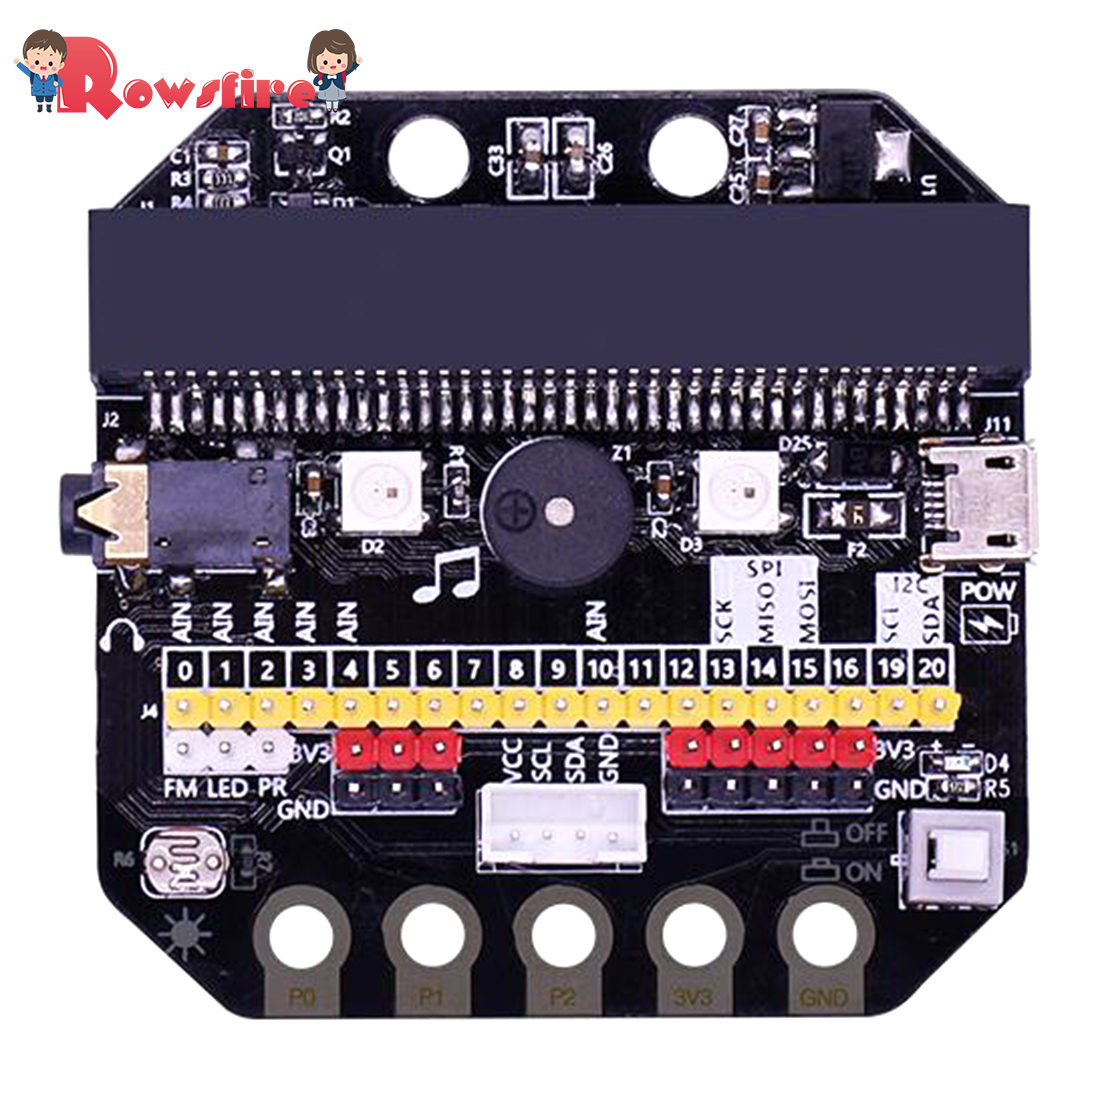 Basic:Bit IO Expansion Board Horizontal Type Pinboard Microbit Python Development Board With Building Block Expansion Pack